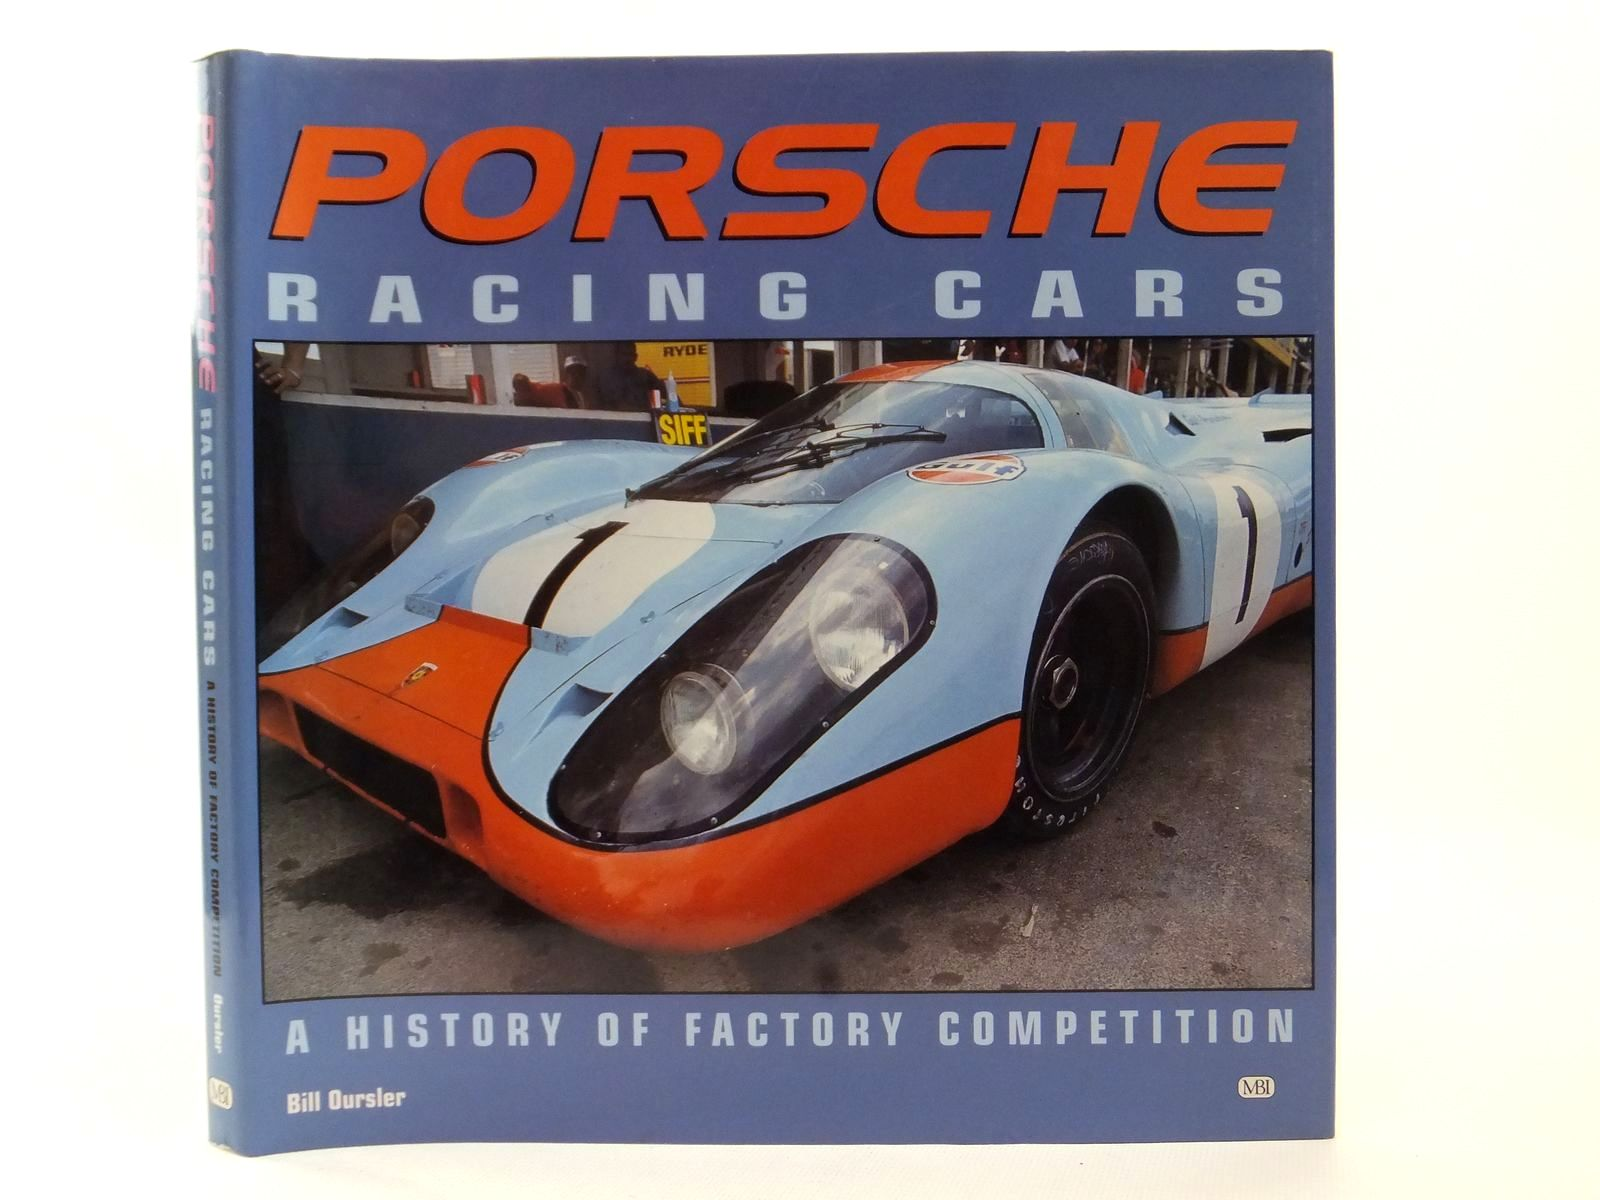 Photo of PORSCHE RACING CARS A HISTORY OF FACTORY COMPETITION written by Oursler, Bill published by MBI Publishing (STOCK CODE: 2123005)  for sale by Stella & Rose's Books